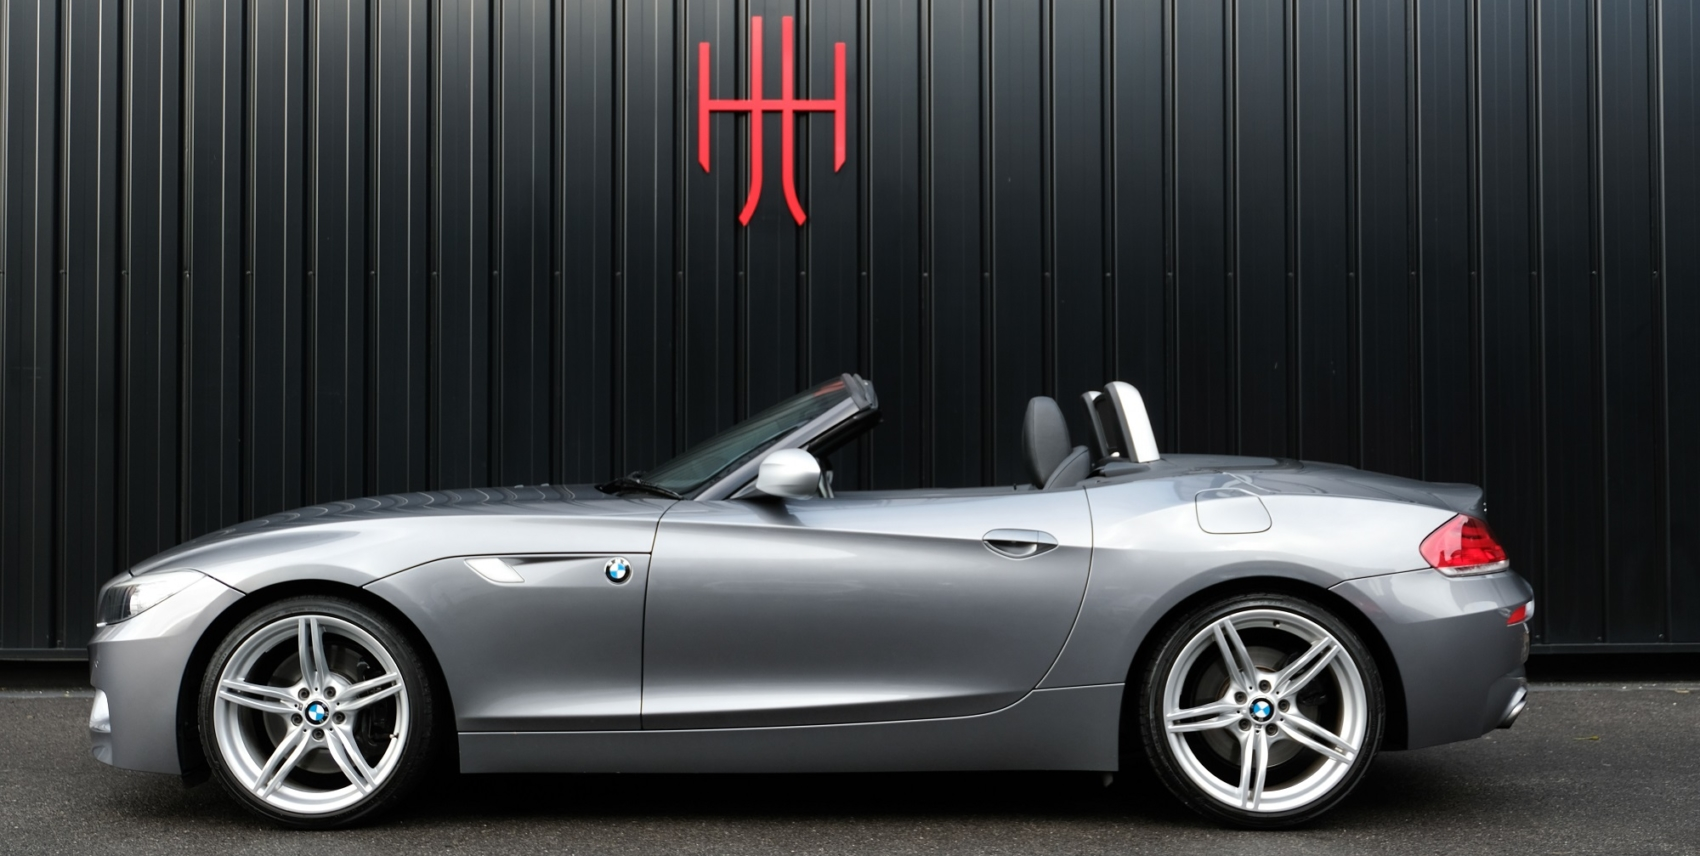 BMW Z4 Sdrive 35iS DKG7